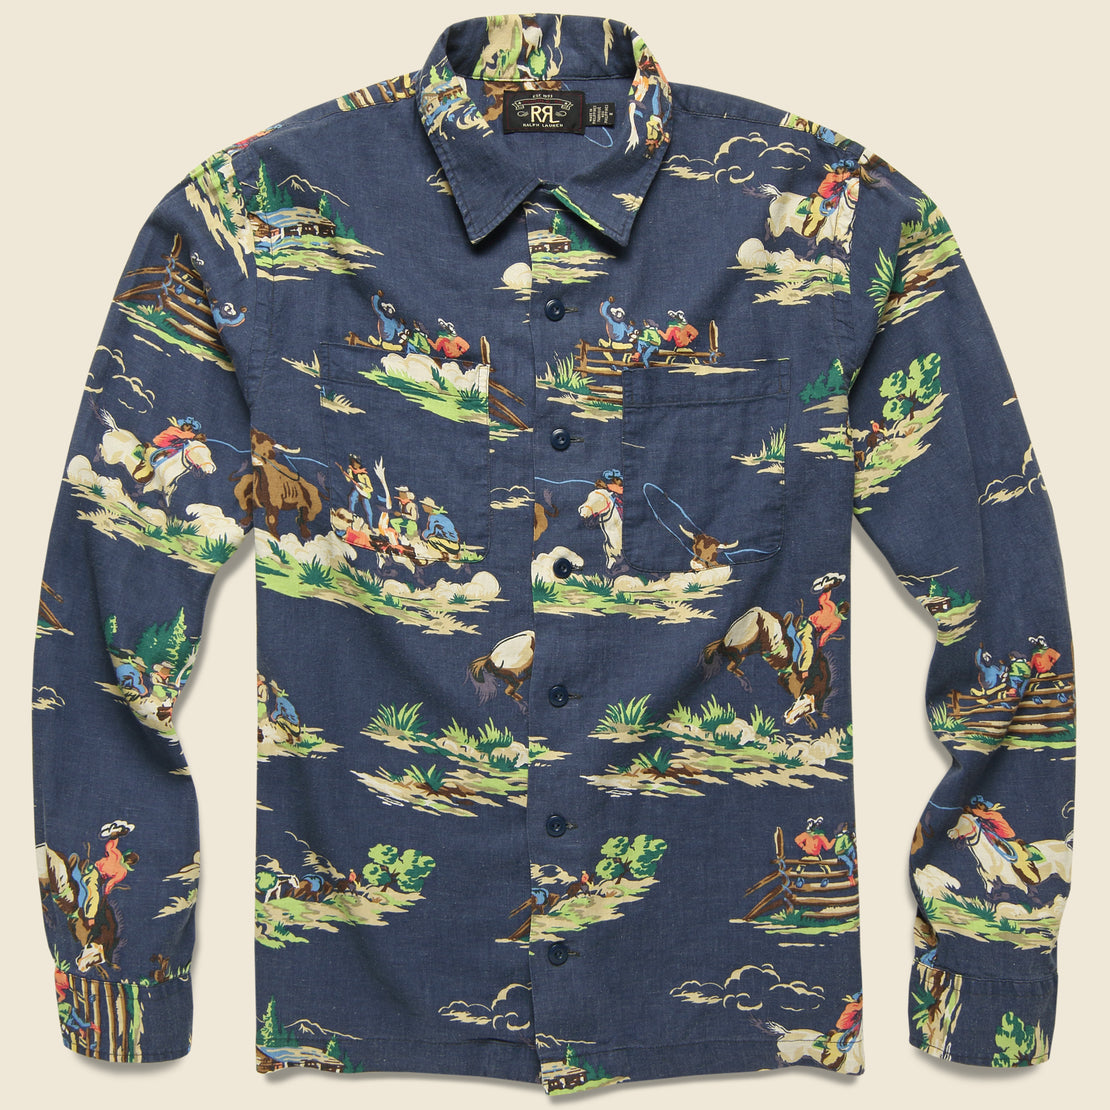 RRL Western Print Towns Camp Shirt - Navy Multi